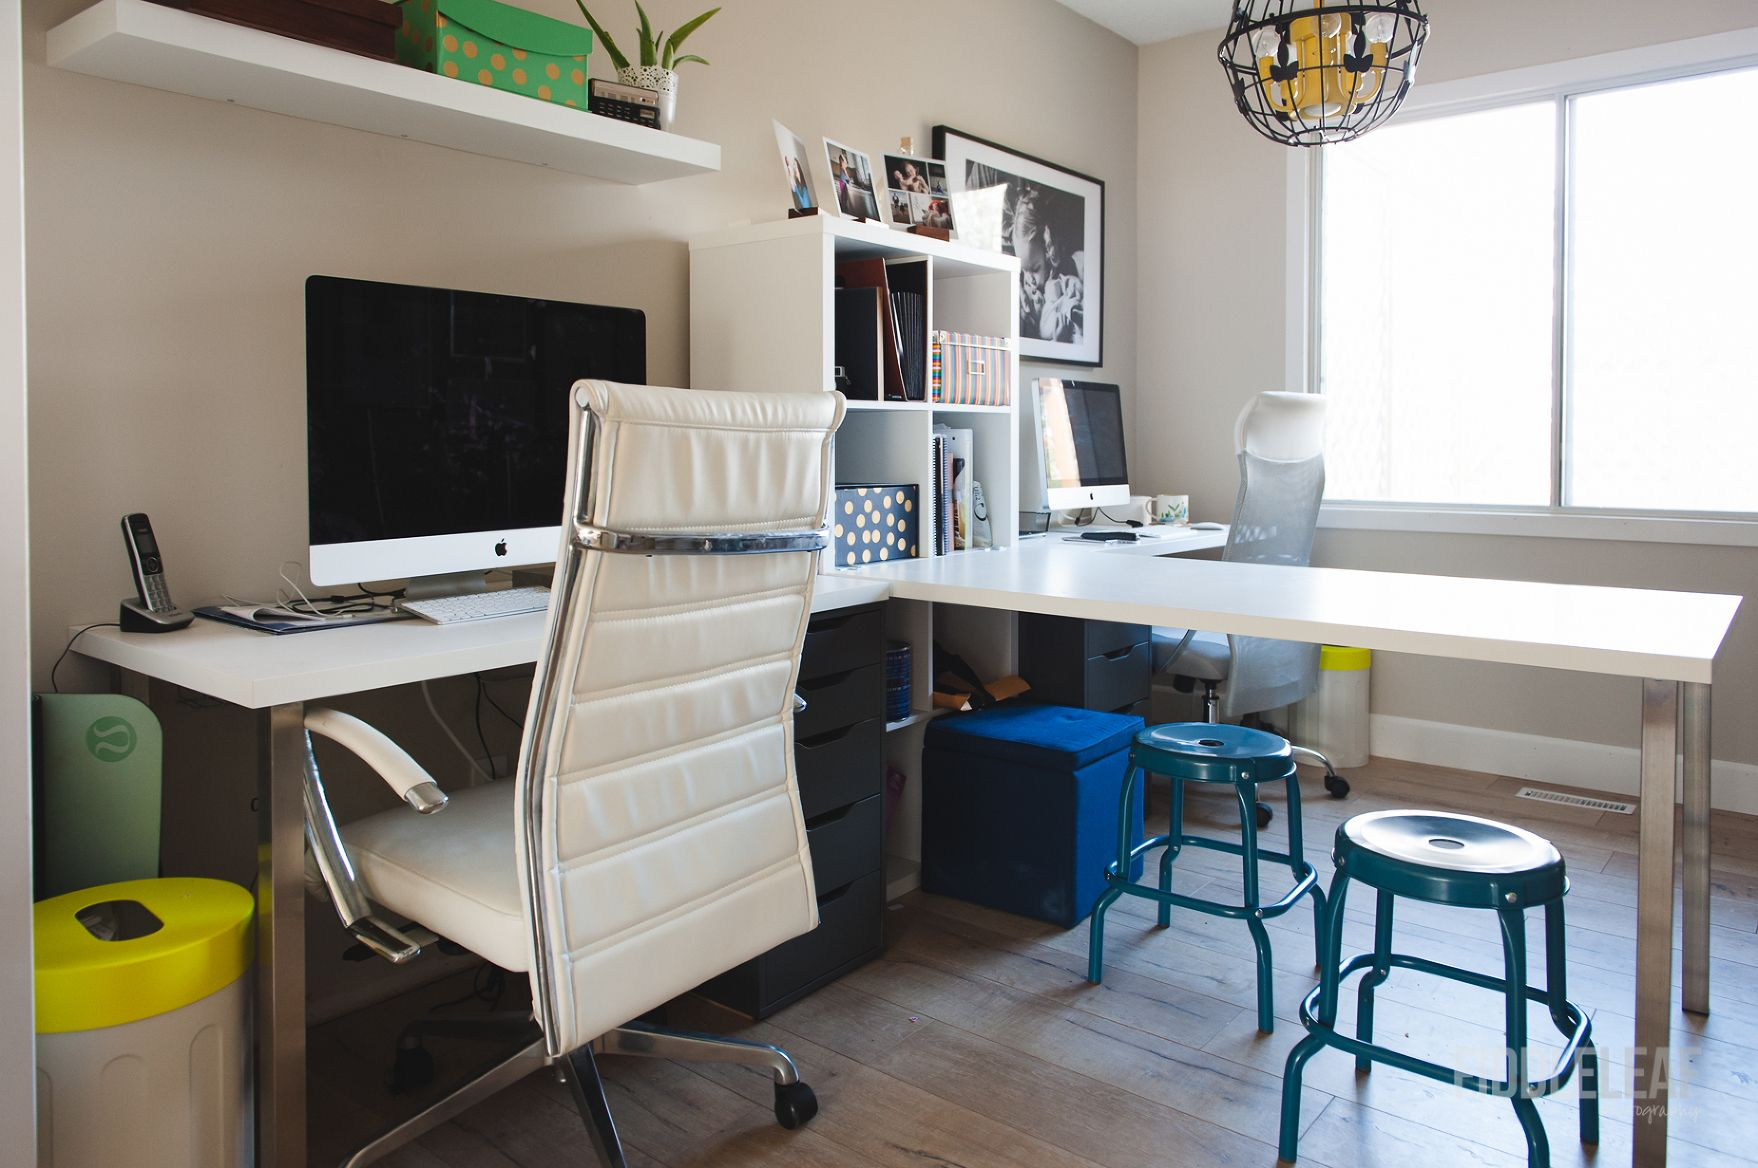 Behind The Scenes The Office Cheap Office Furniture Office Furniture Design Home Office Space